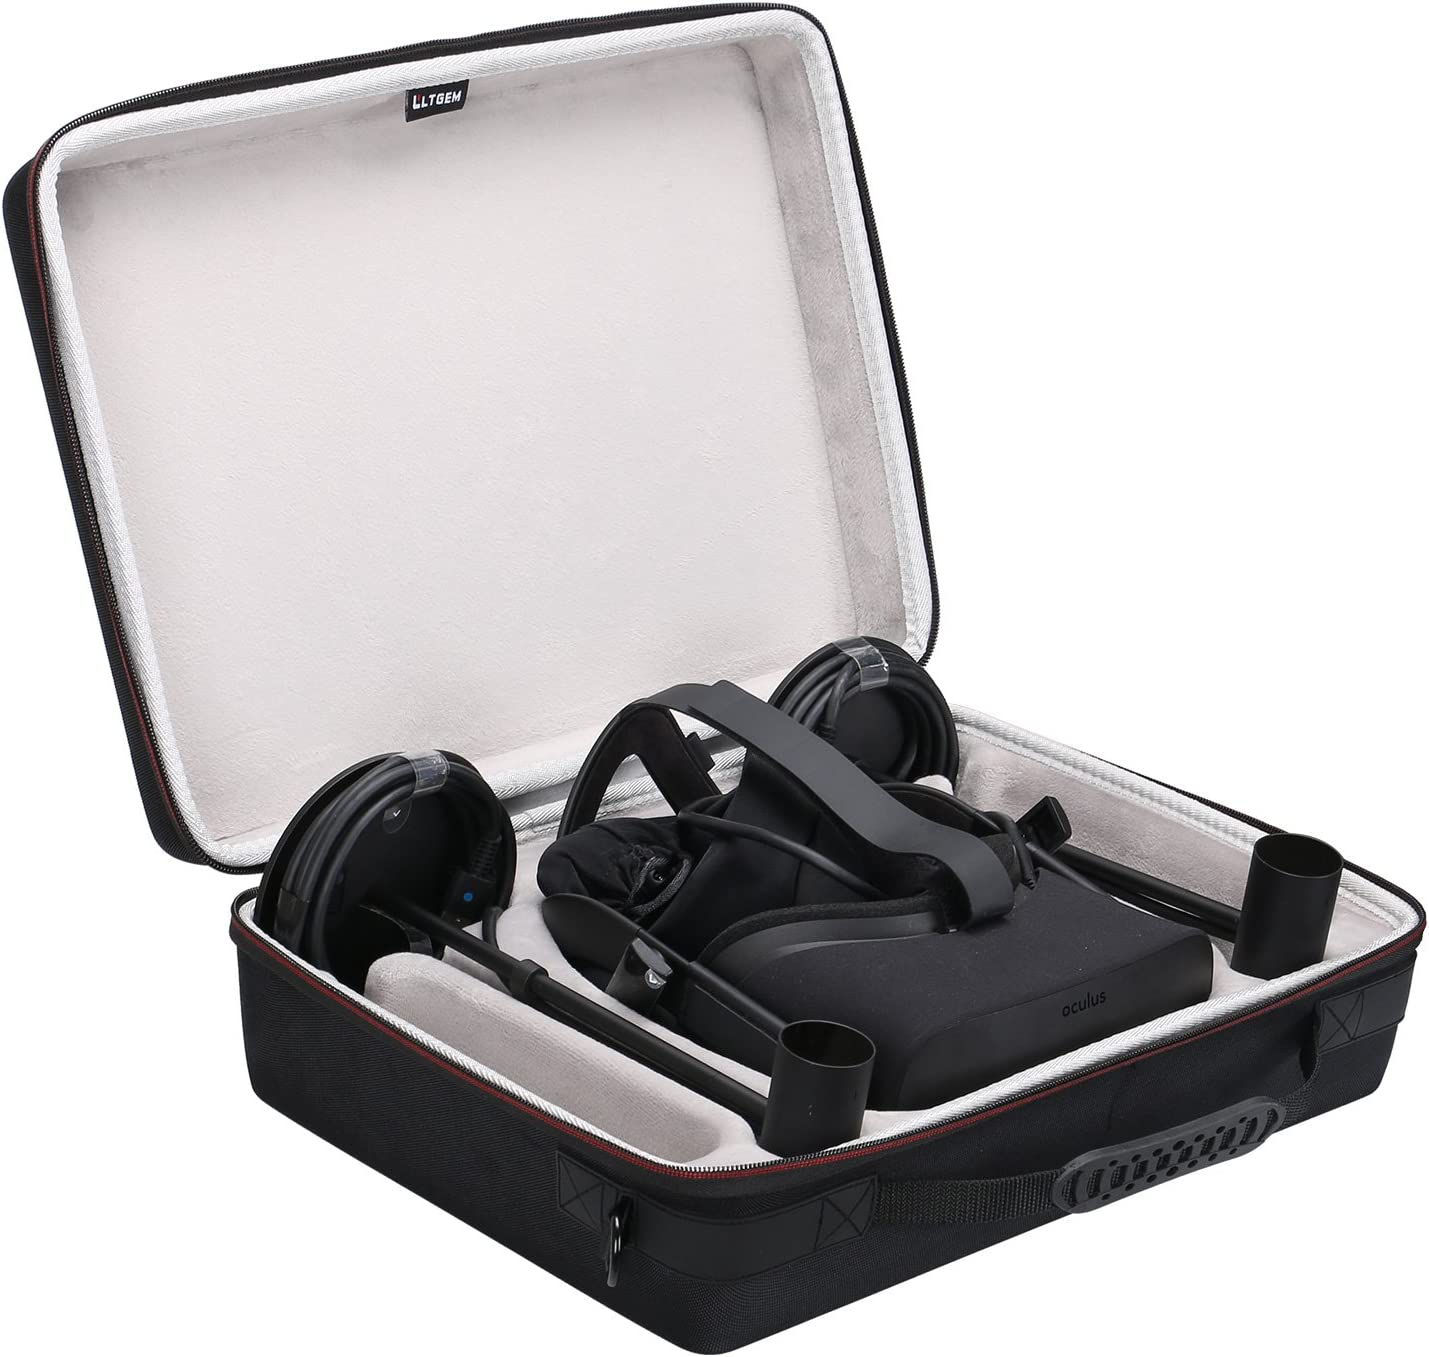 Portable Storage Bag Case For Oculus Rift Vr Touch Virtual Reality System Carry Cases, Covers & Skins Virtual Reality